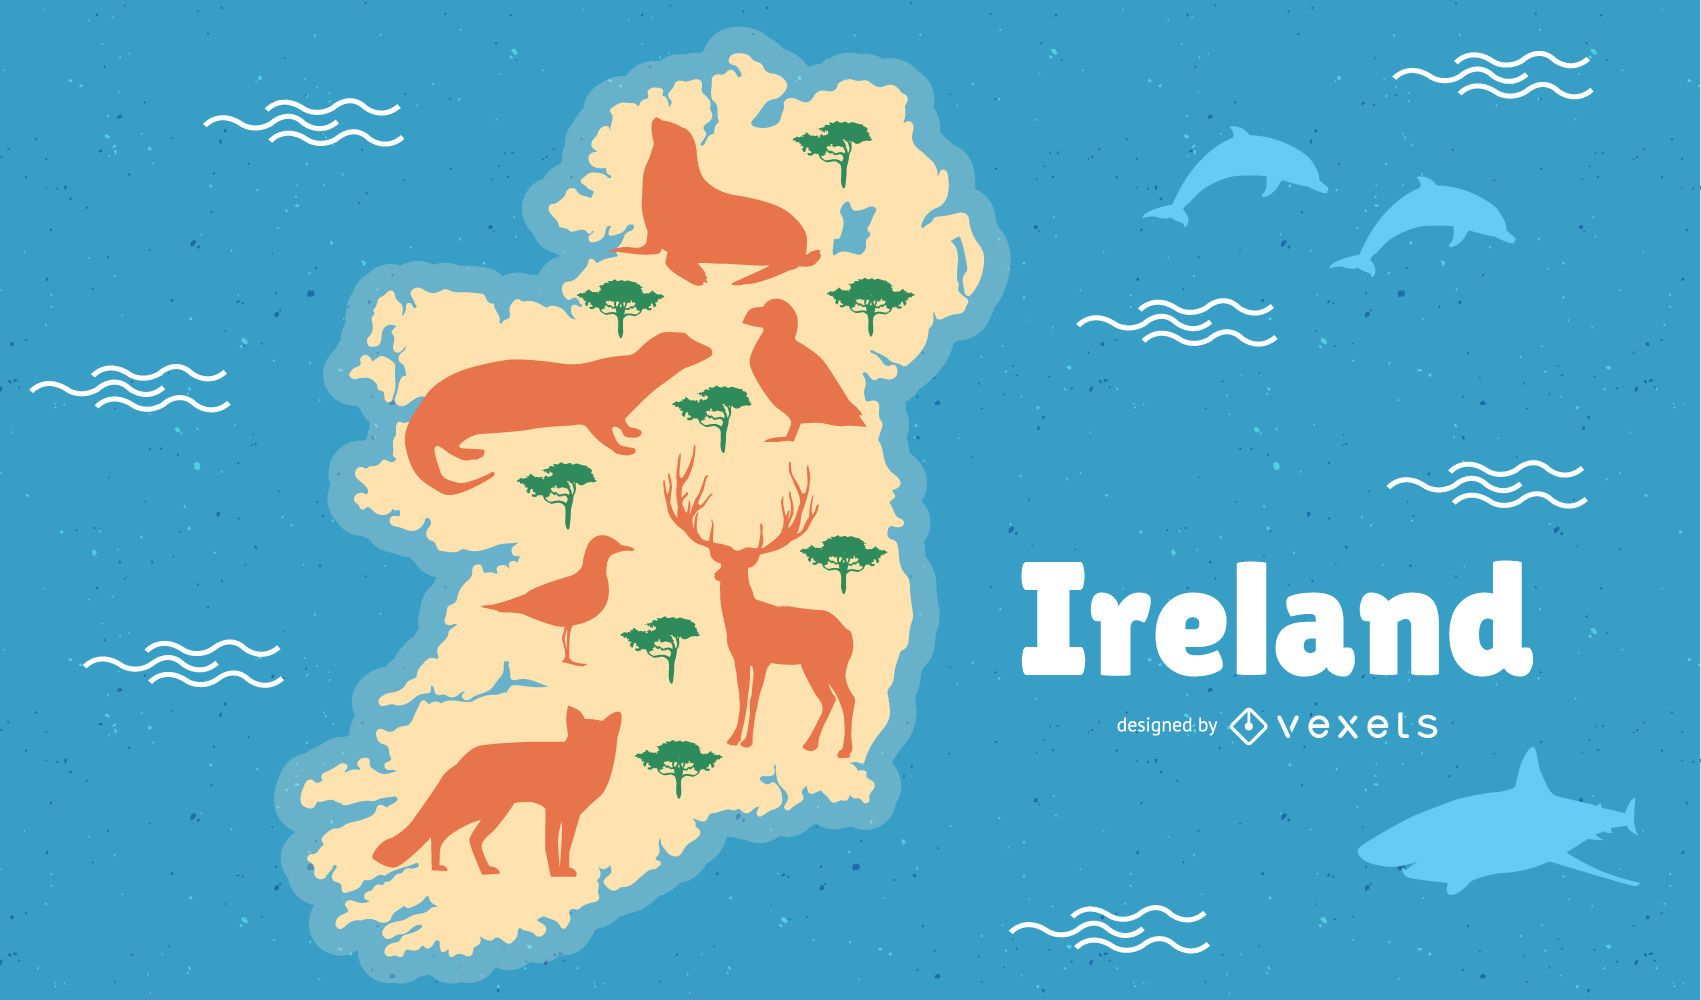 Ireland with Animals Map Illustration - Vector download on map of netherlands, map of european countries, map of japan, map of britain, map of british isles, map of dublin, map of skellig islands, map of denmark, map of united kingdom, map of ring of kerry, map of united states, map of prince edward island, map of eastern hemisphere, map of yugoslavia, map of northeast us, map of sweden, map of scotland, map of london, map of hong kong, map of philippines,